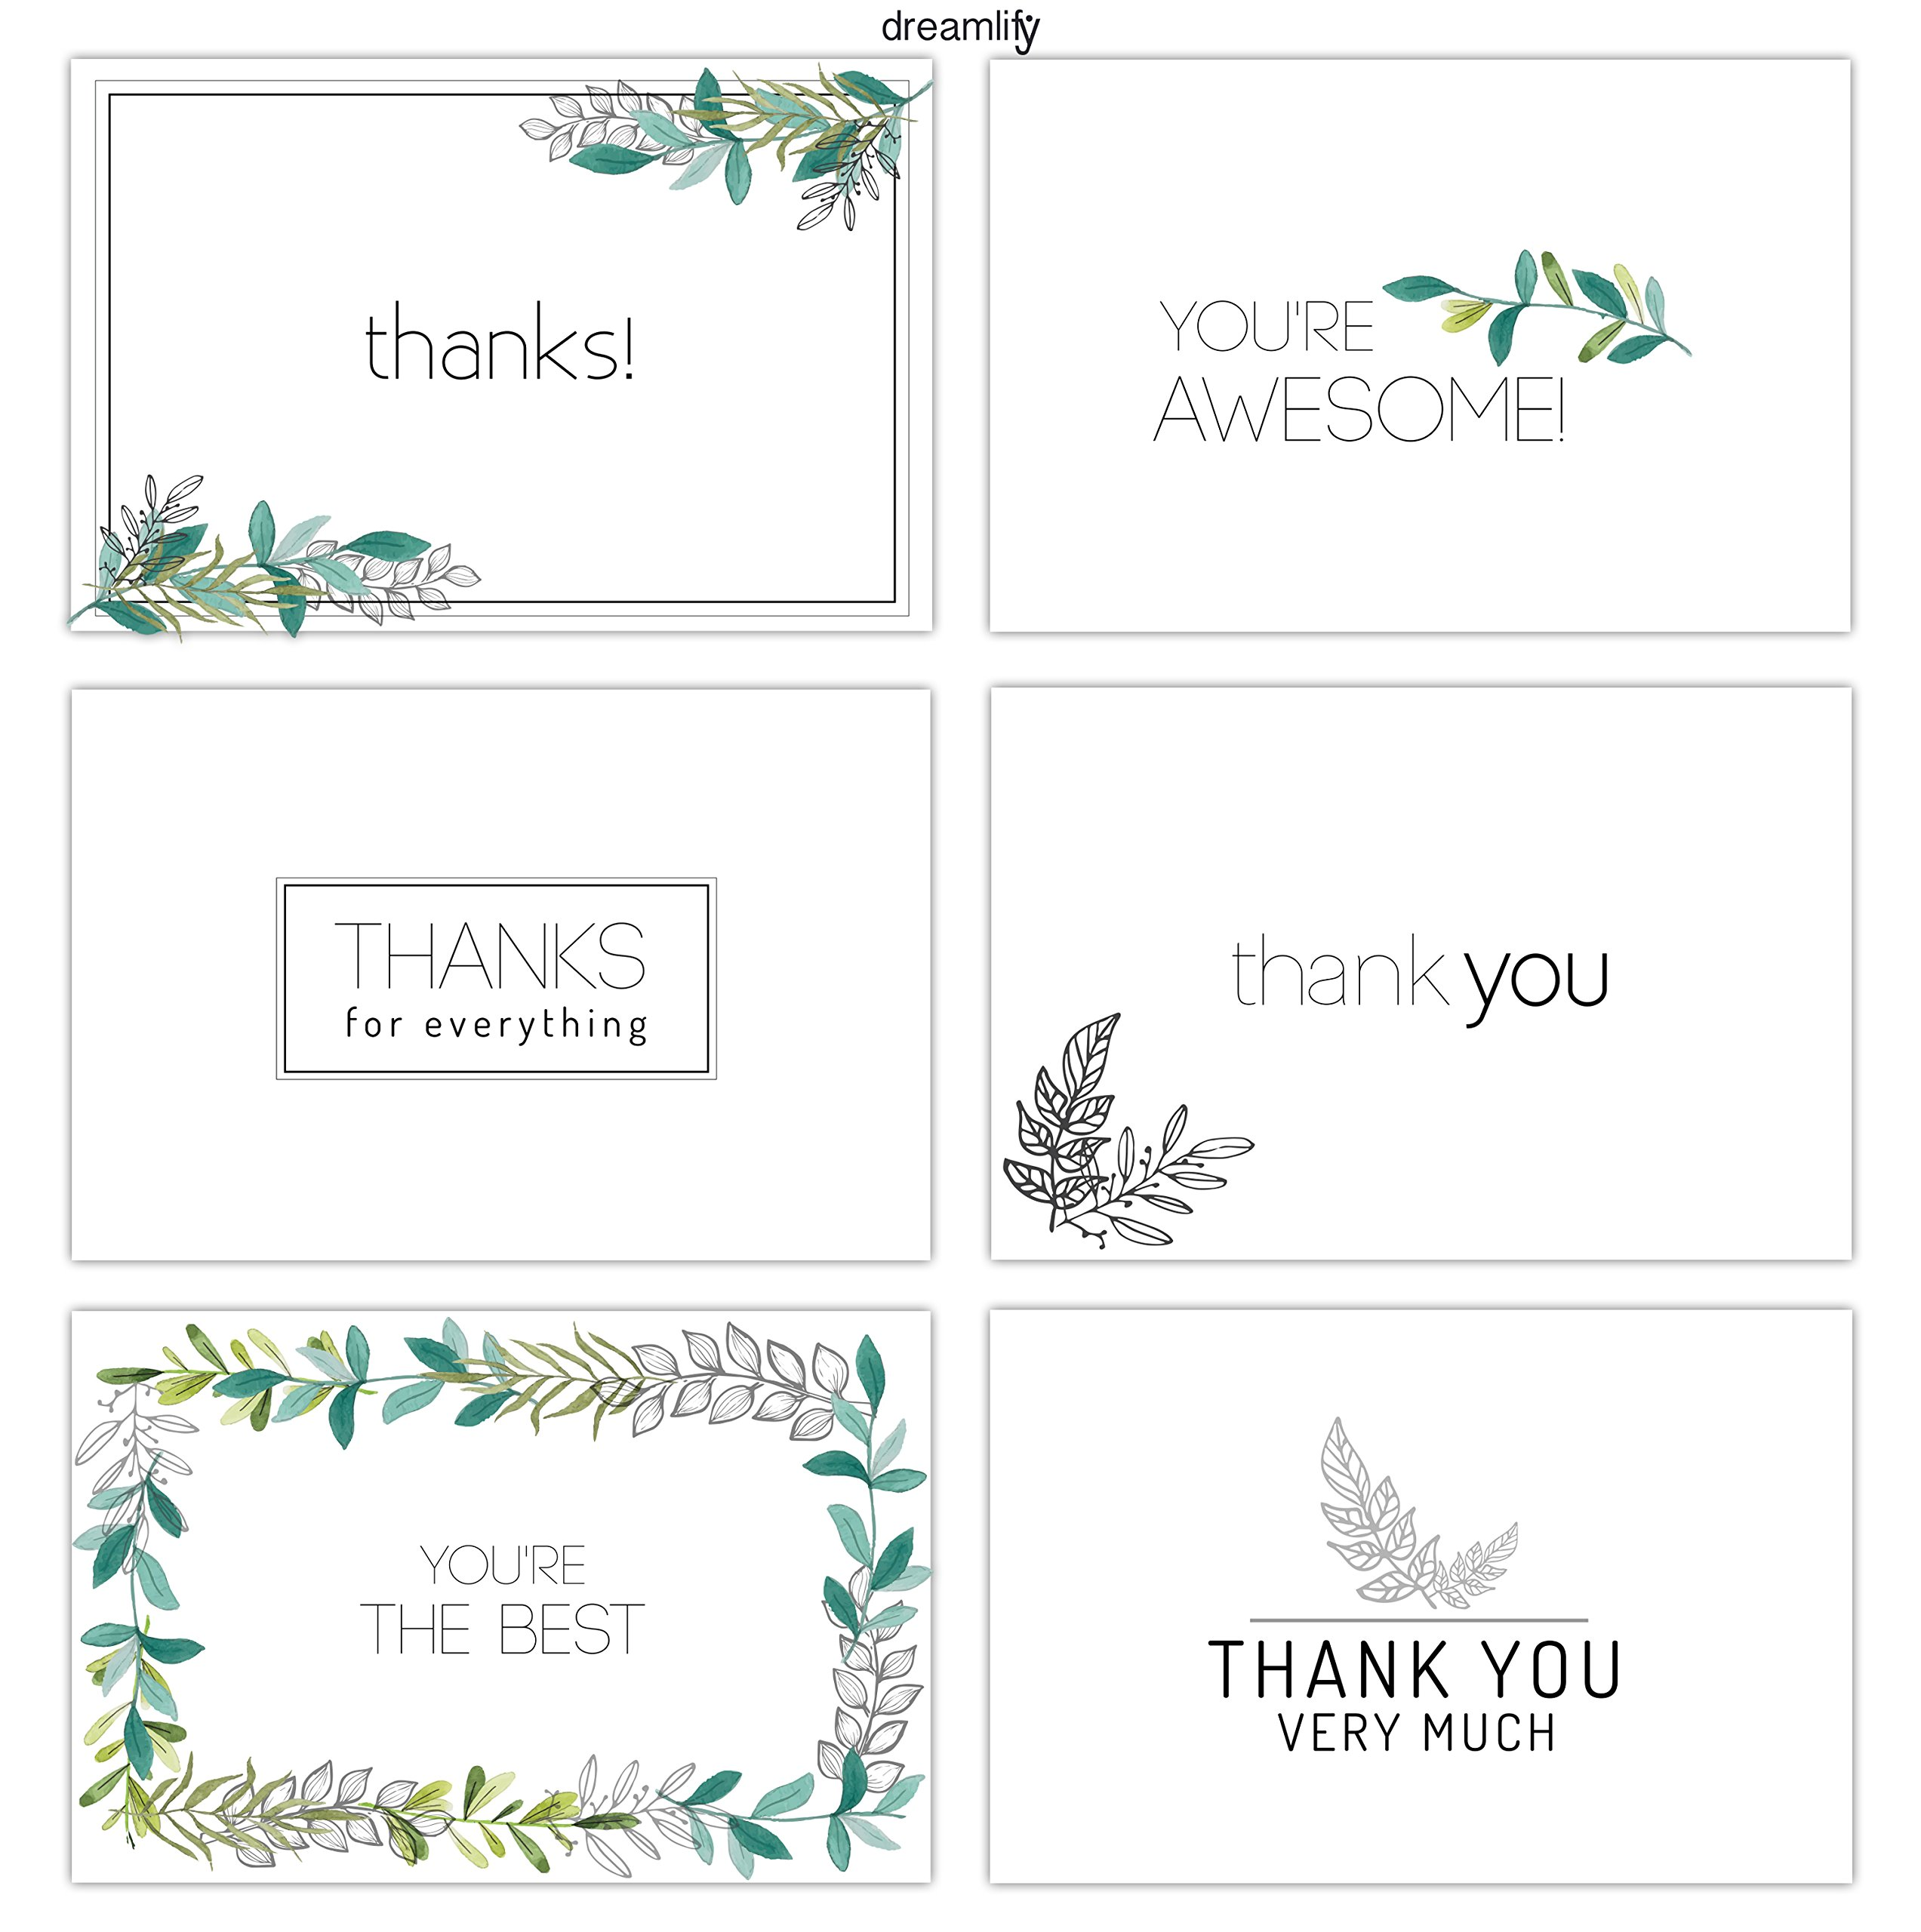 Minimalist Floral Thank You Cards - 36 Bulk Thank You Note Cards - Blank Cards Inside - Included Envelopes - Birthdays, Baby Showers and Business - 6 Designs by dreamlify